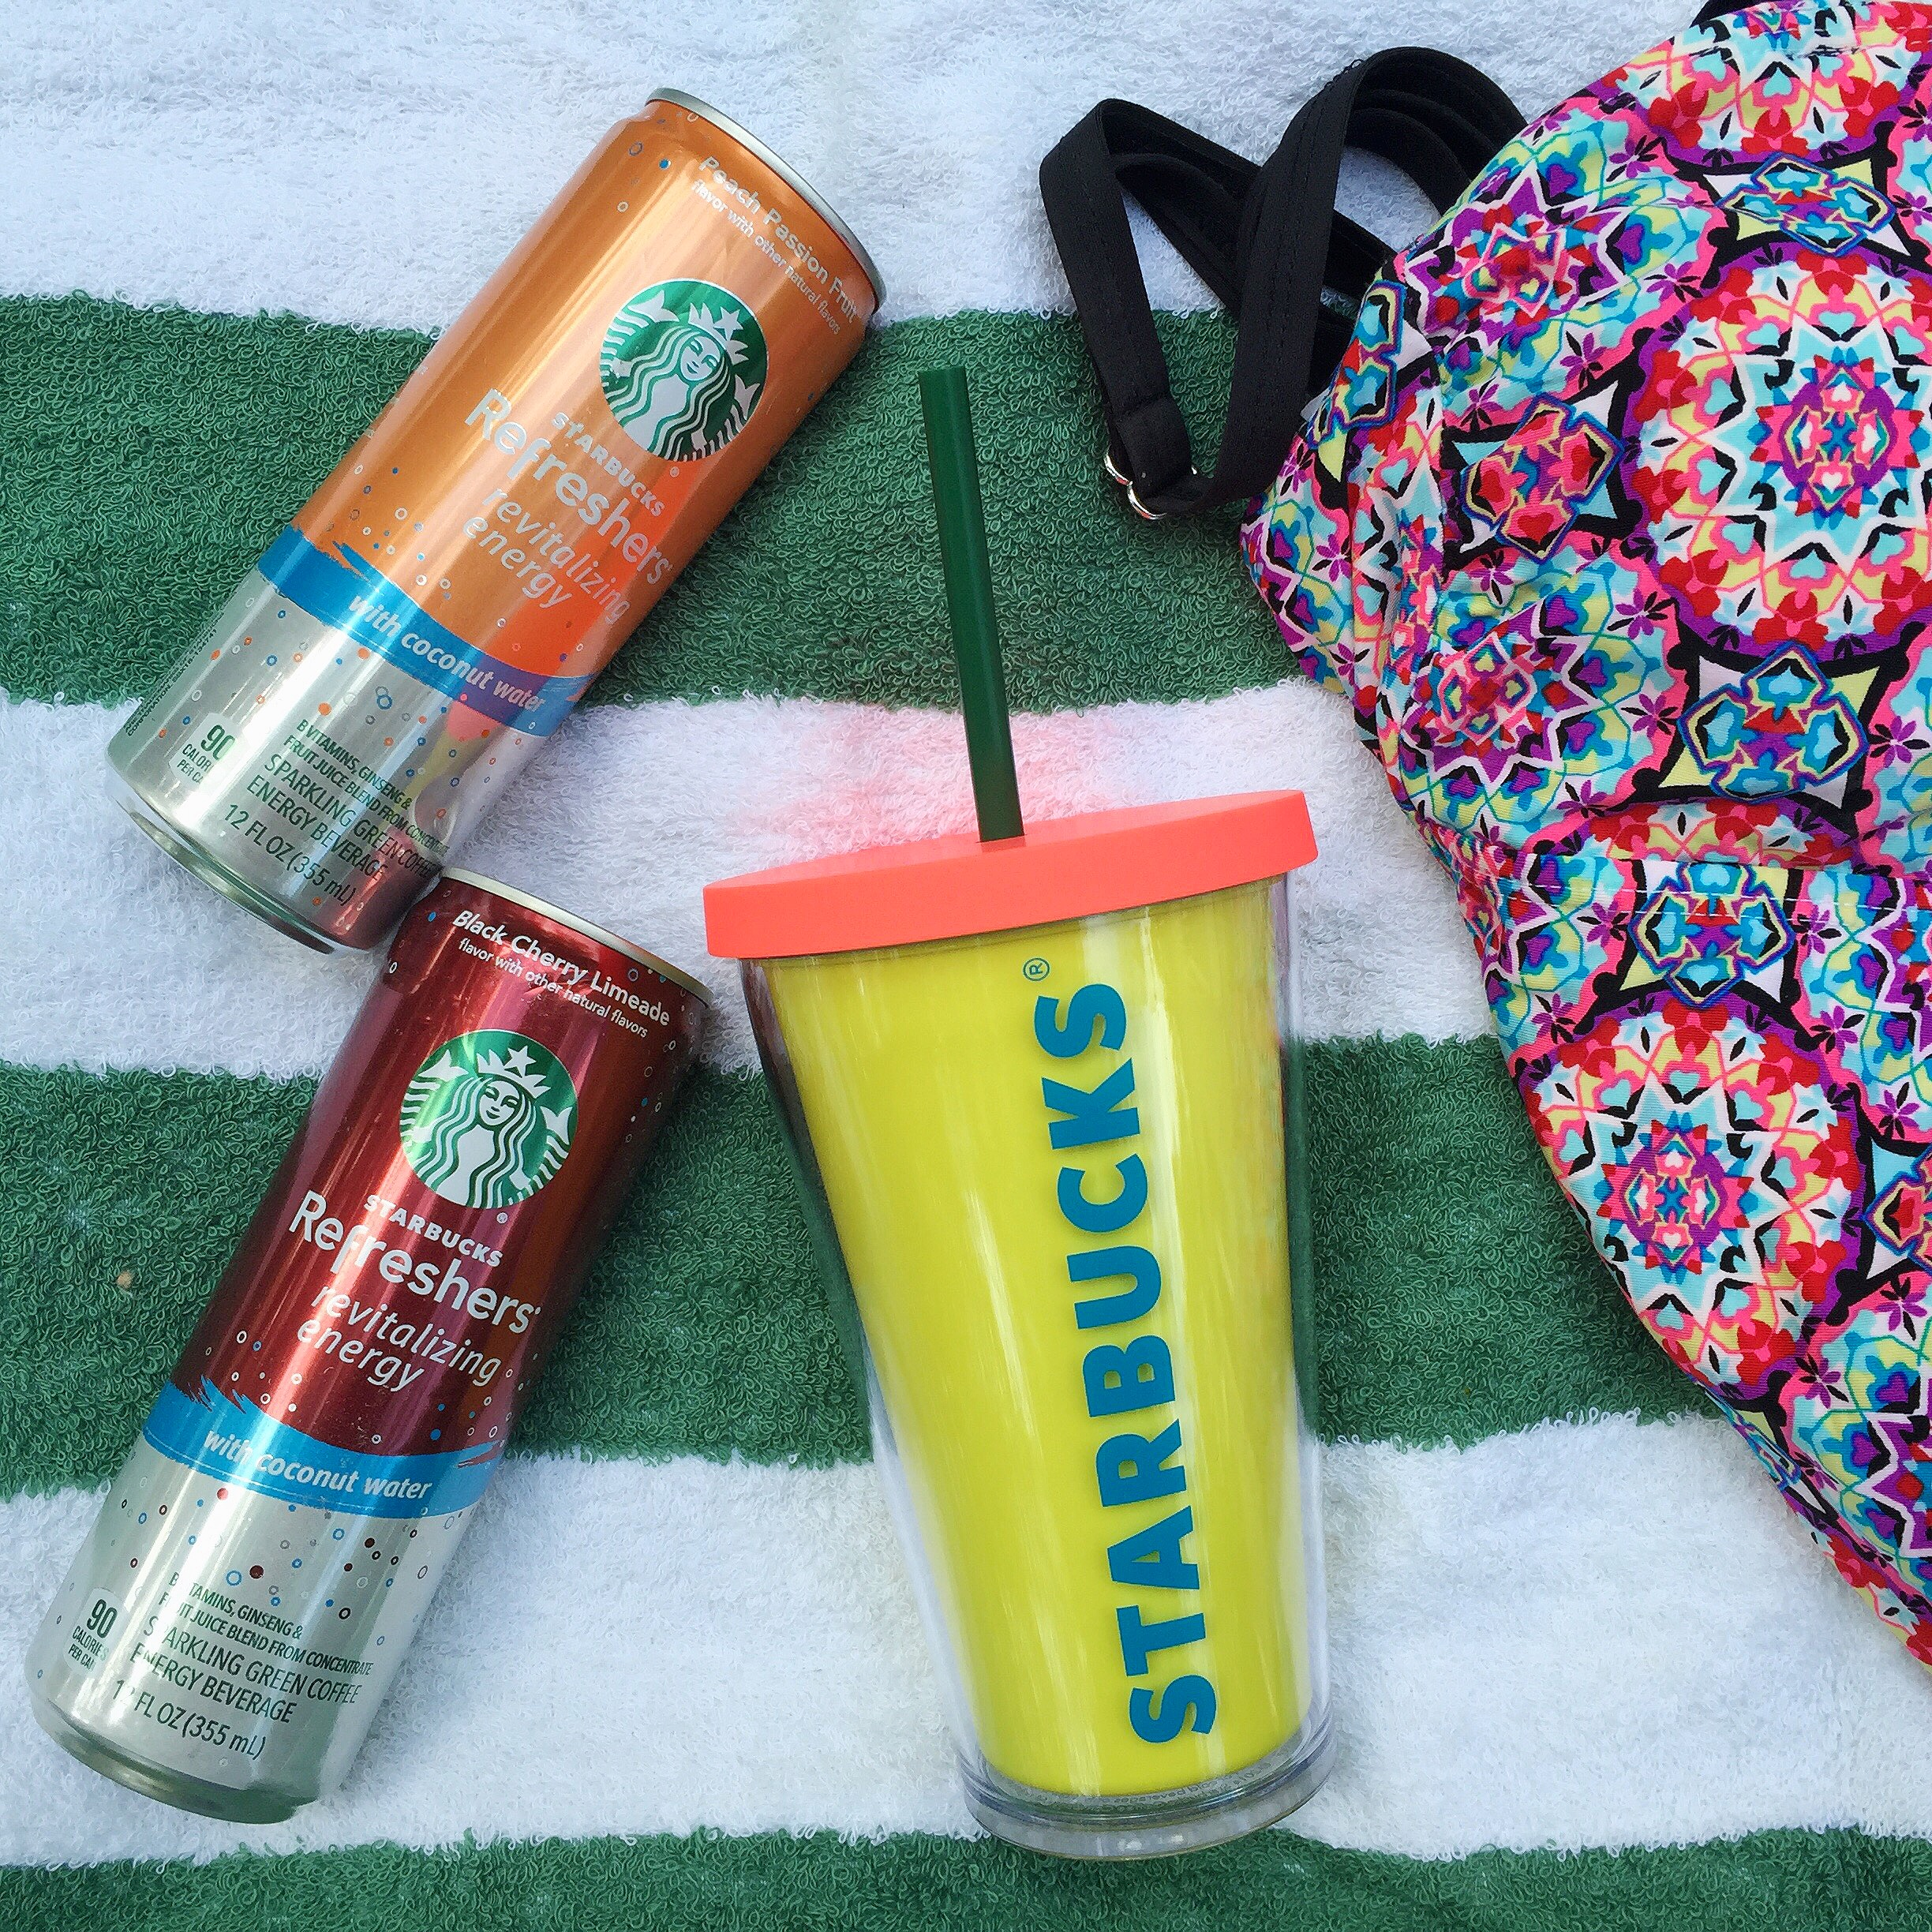 Celebrate Summer With Starbucks At Home © www.roastedbeanz.com #Starbucks #StarbucksCoffee